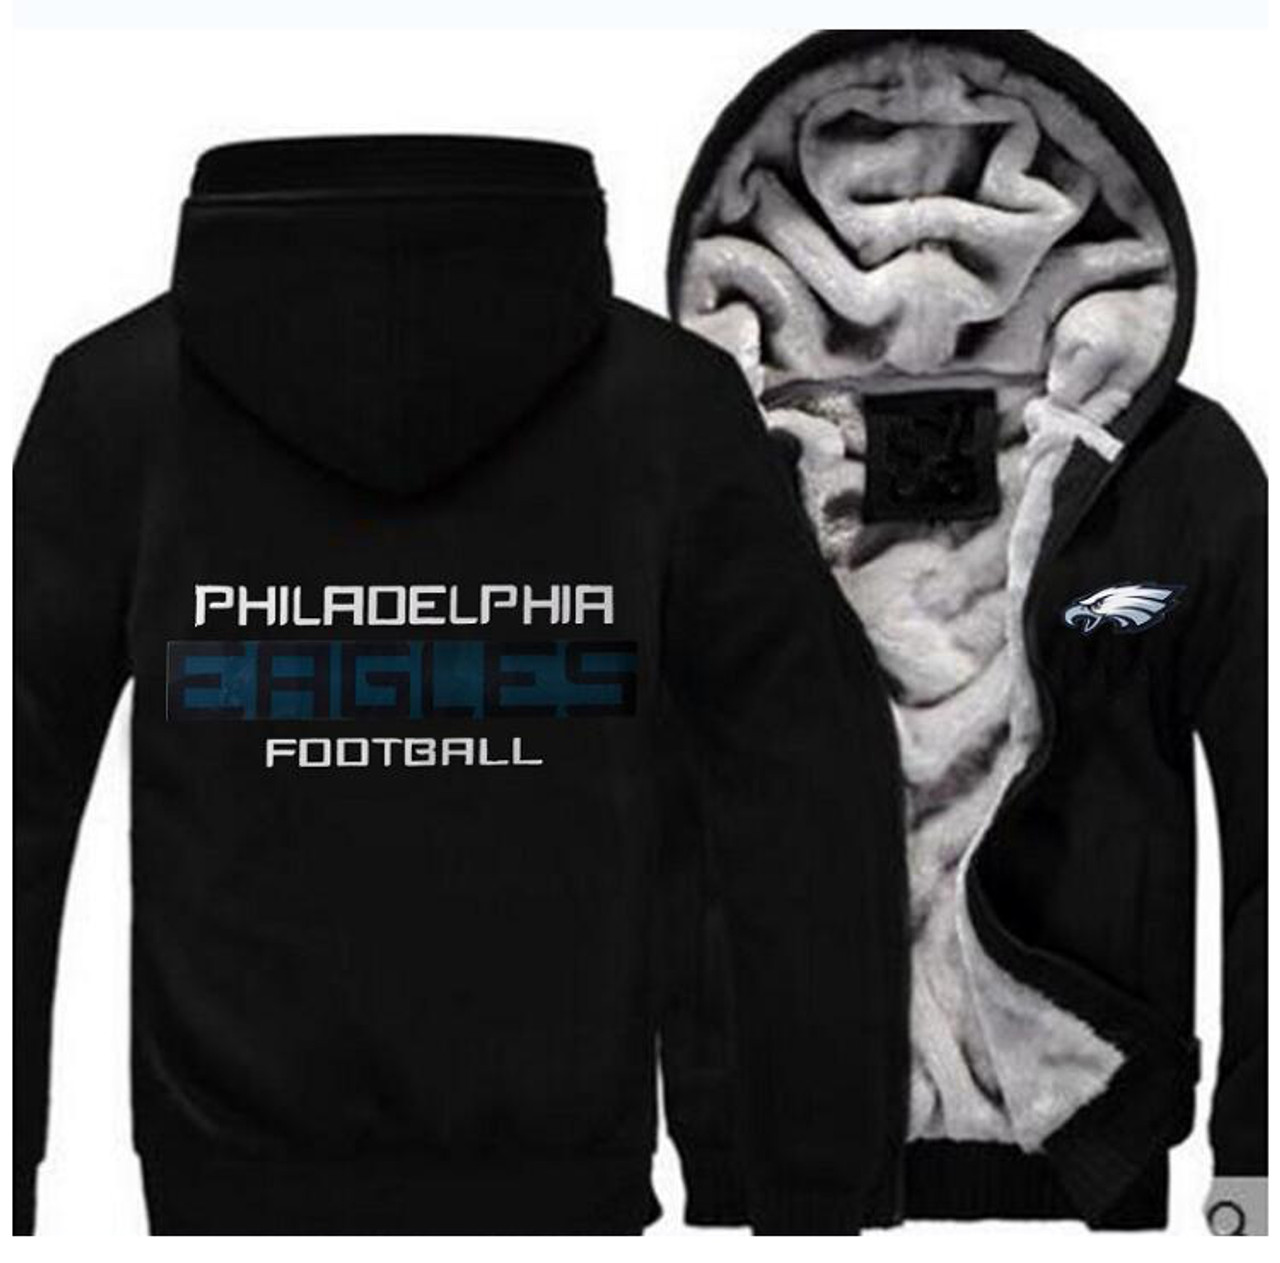 buy popular 8697e 0680b **(EAGLES/NEW-OFFICIALLY-LICENSED-N.F.L.  PHILADELPHIA-EAGLES/NEW-TWO-TONE-STYLE,FLEECE-LINED-TEAM-JACKETS/3-D-CUSTOM-DETAILED-GRAPHIC-PRINTED-DOUBLE-S...